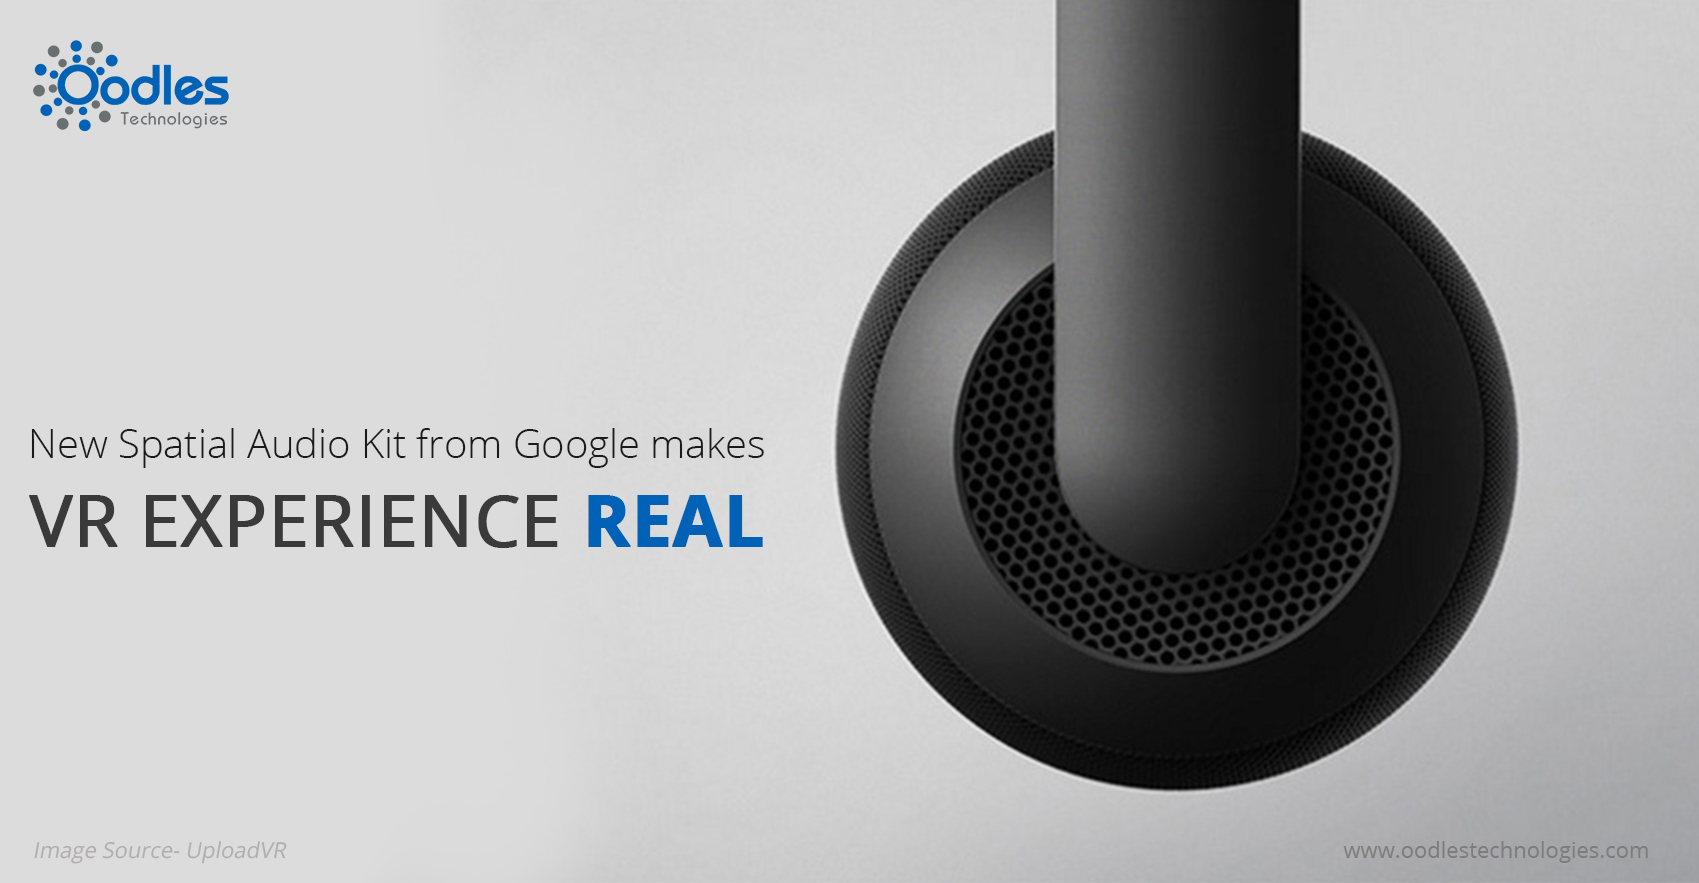 New Spatial Audio Kit From Google Makes VR Experience Real